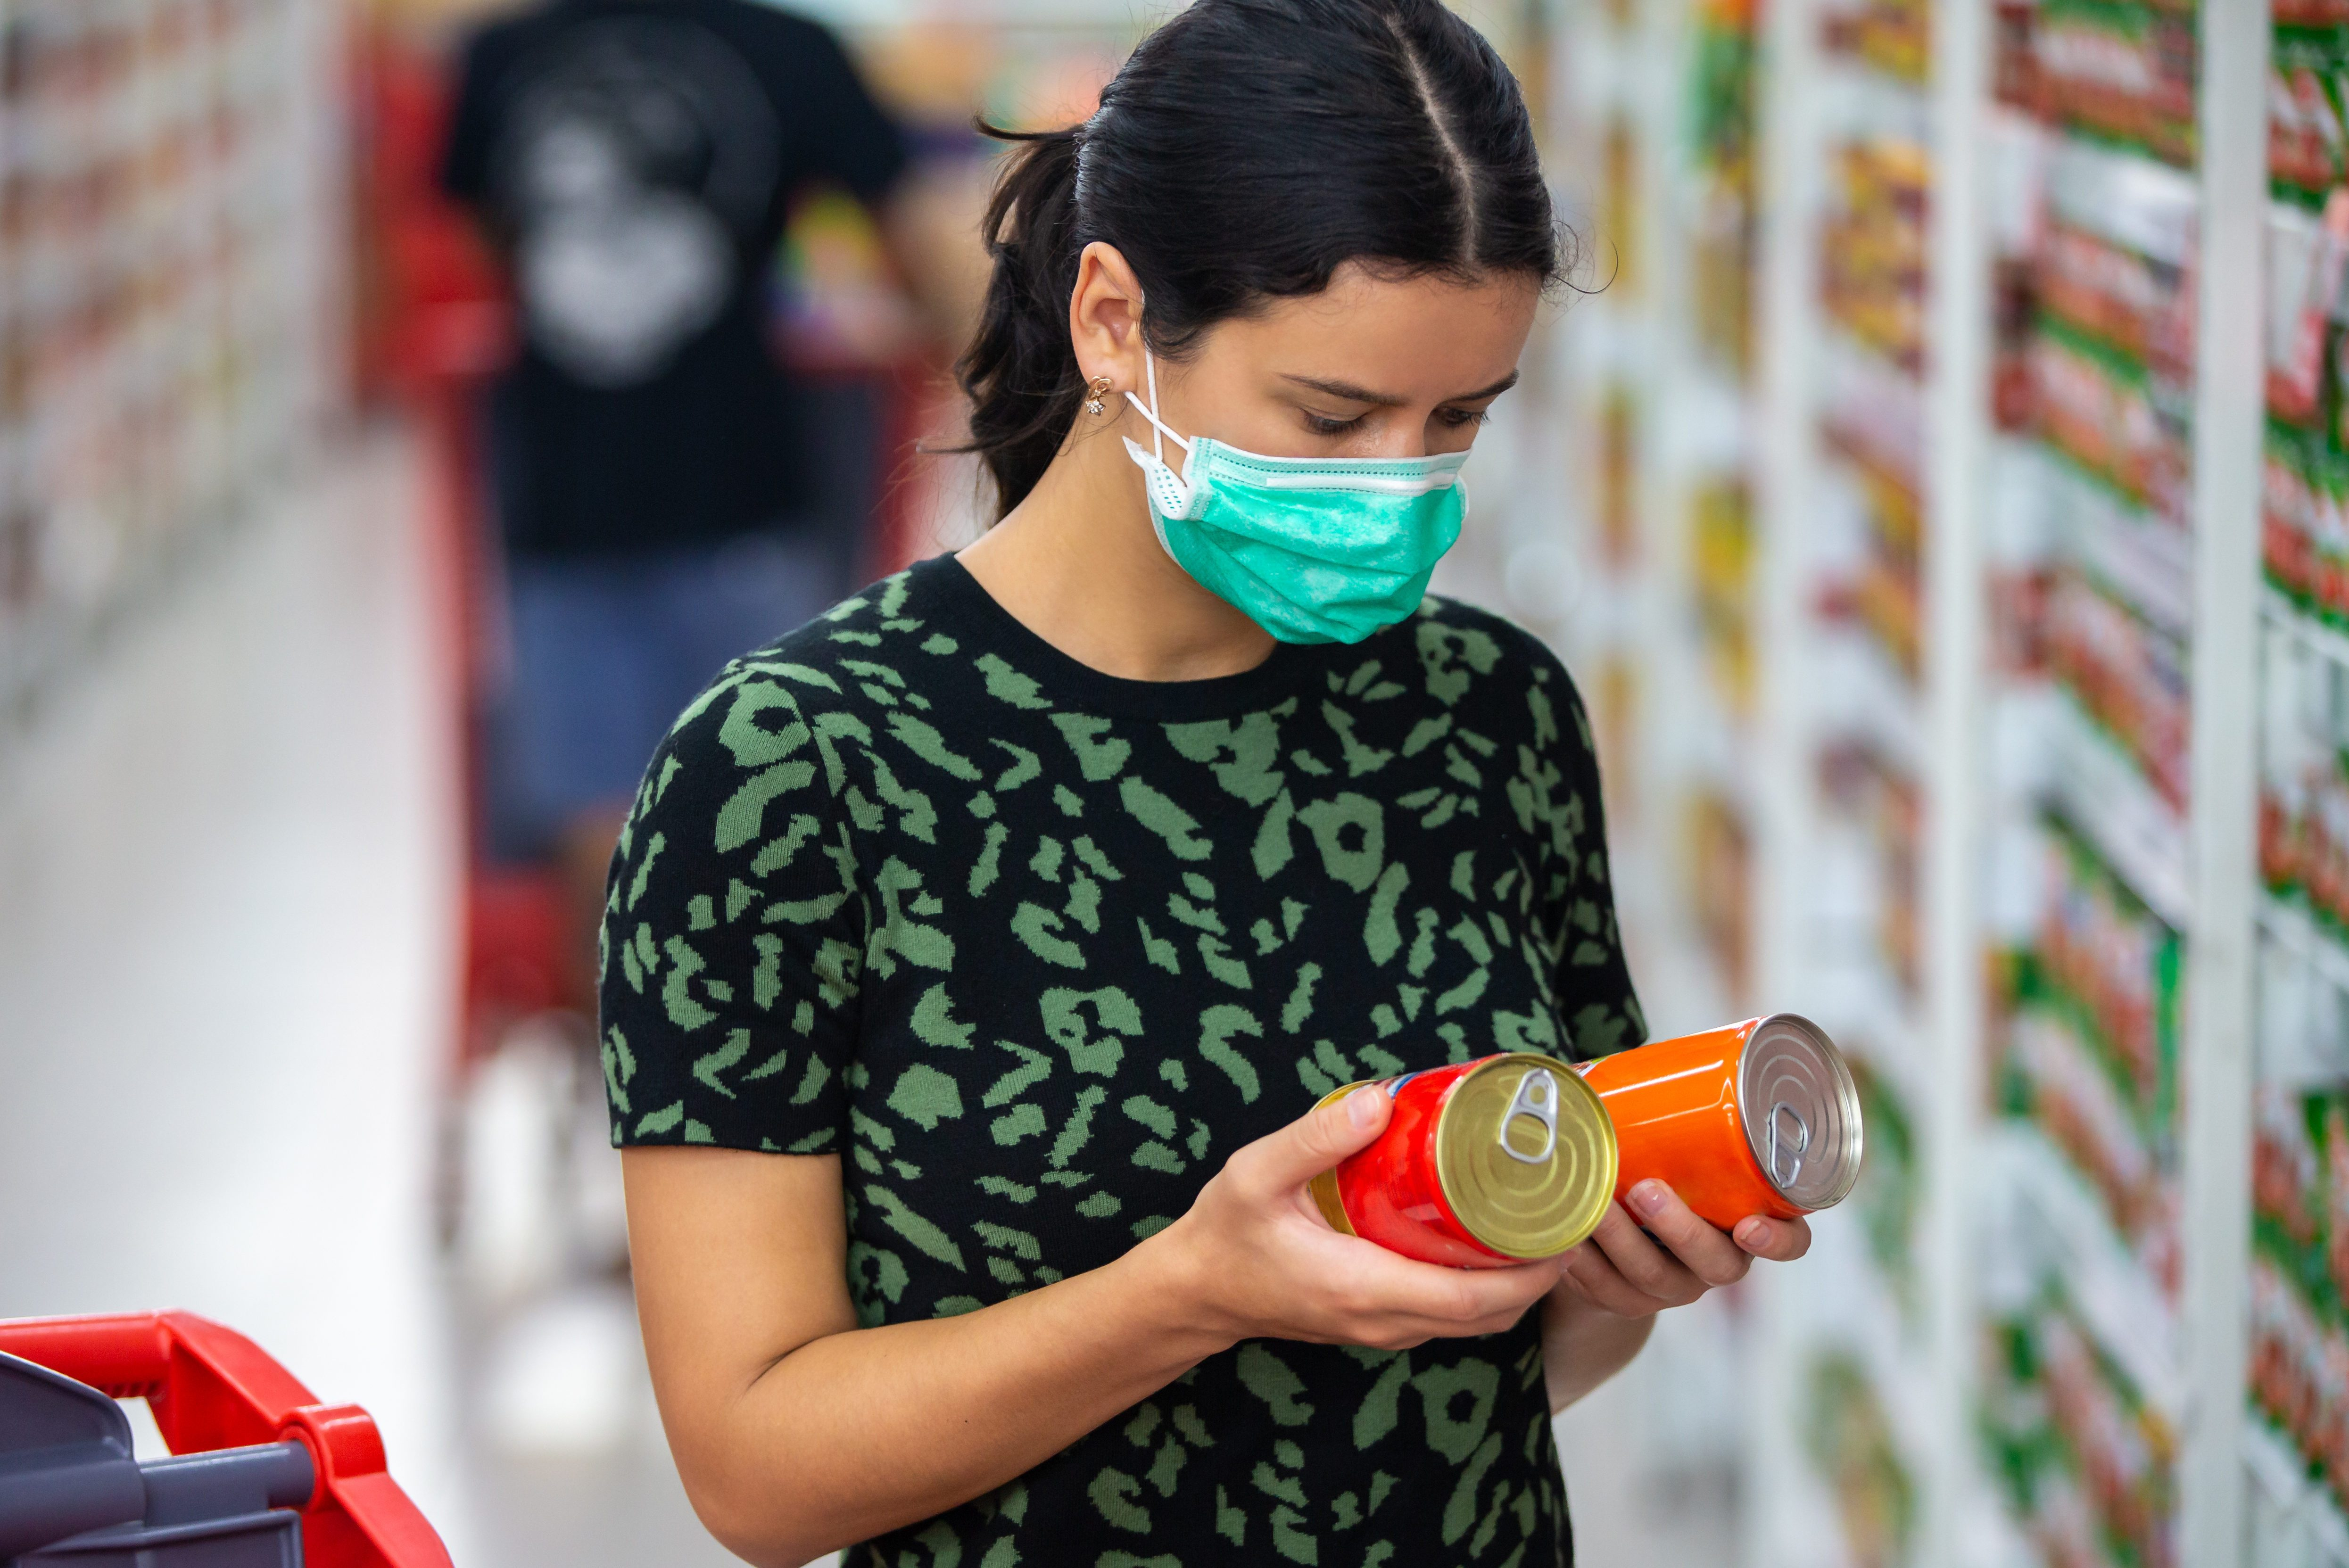 Alarmed female wears medical mask against coronavirus while grocery shopping in supermarket or store- health, safety and pandemic concept - young woman stockpiling food in fear of covid-19